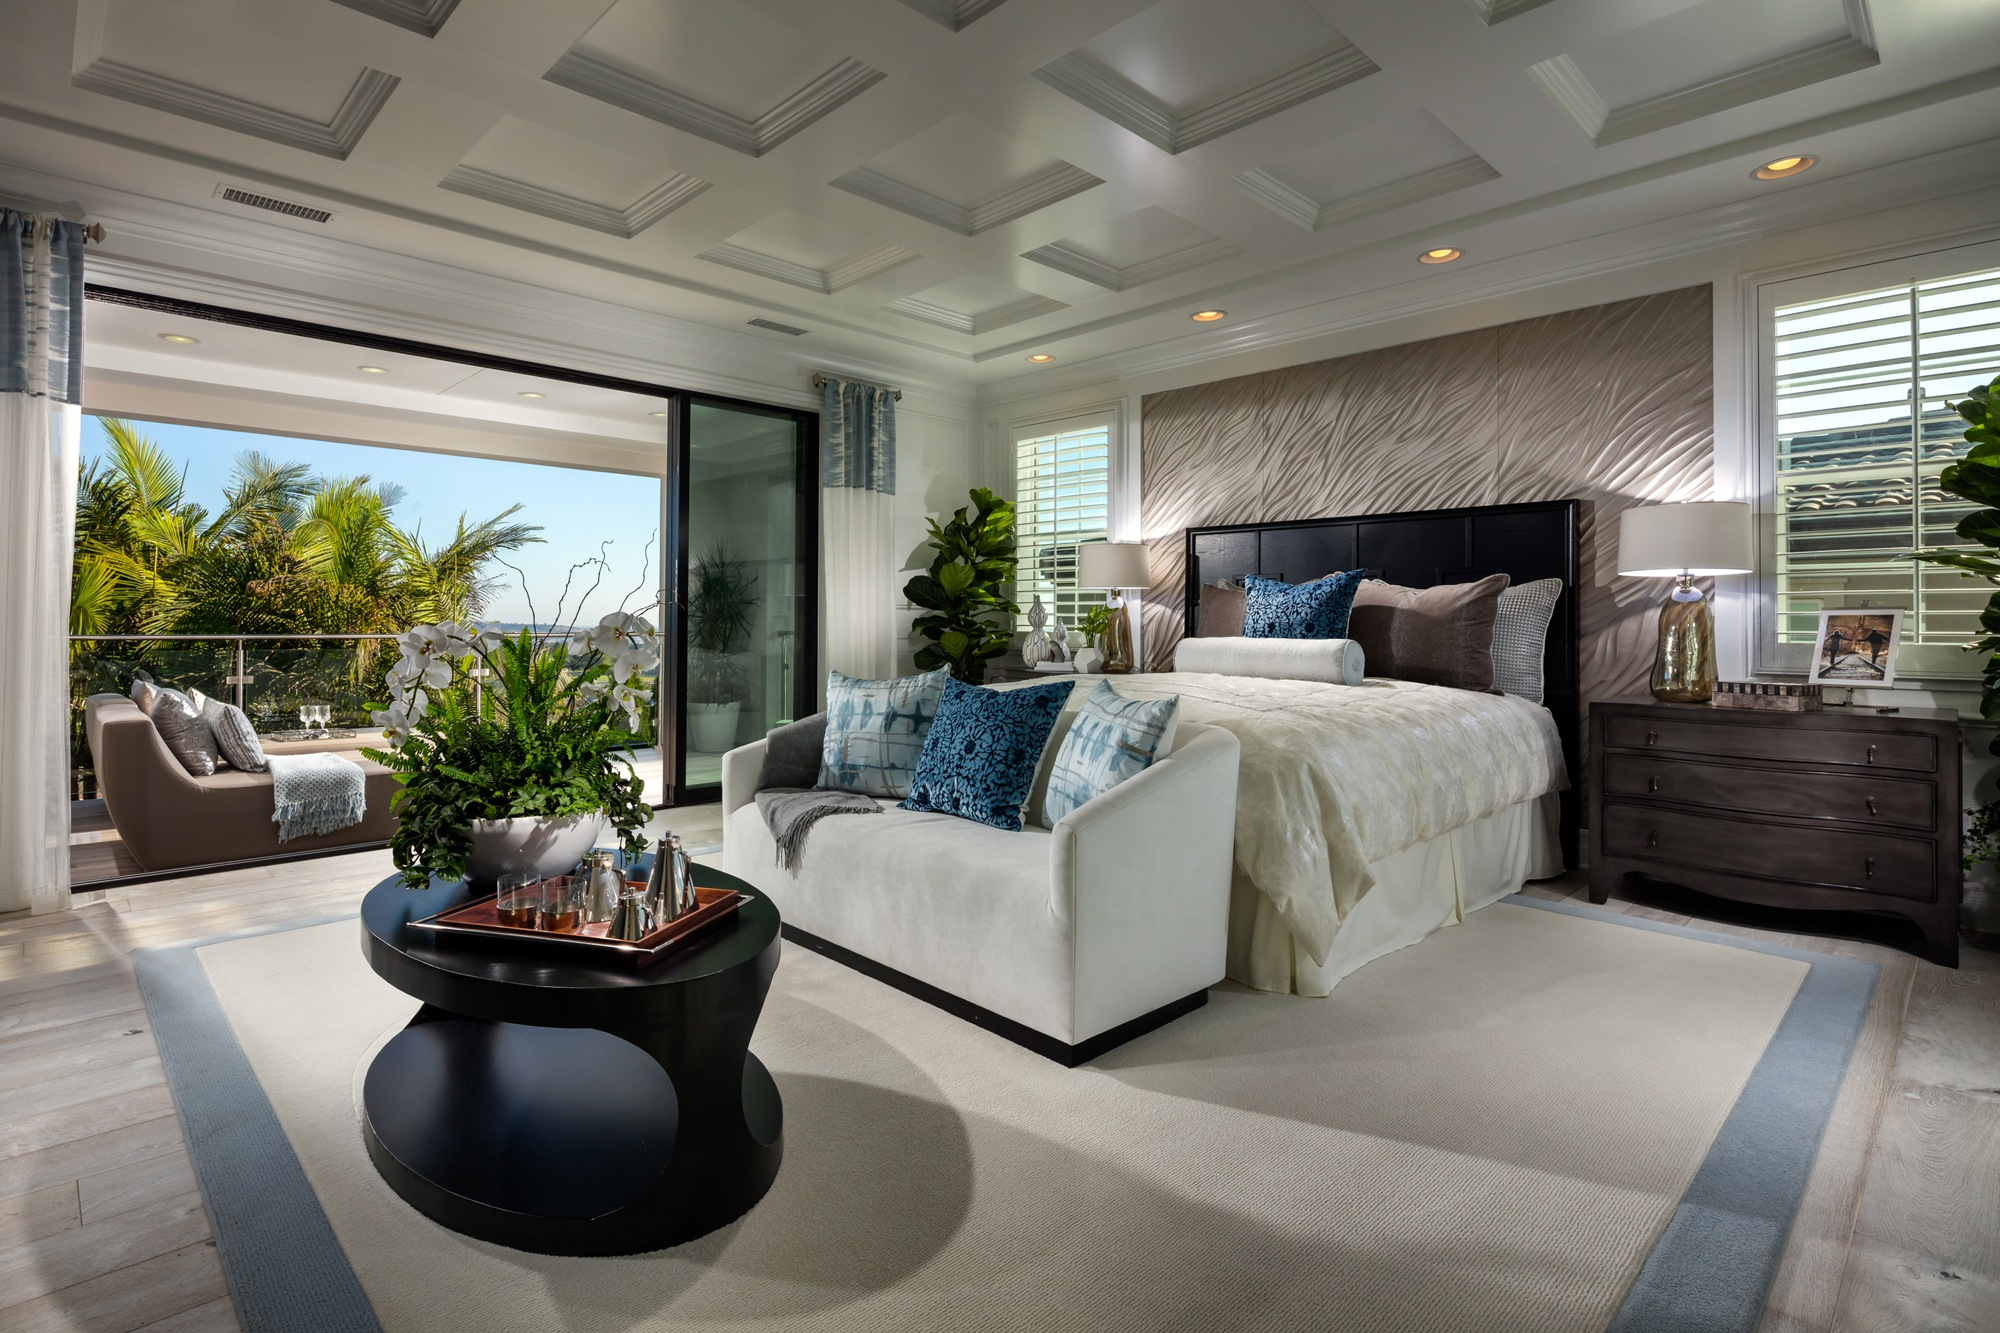 Enclave At Yorba Linda By Ryan Young Interiors Photography Chris Mayer